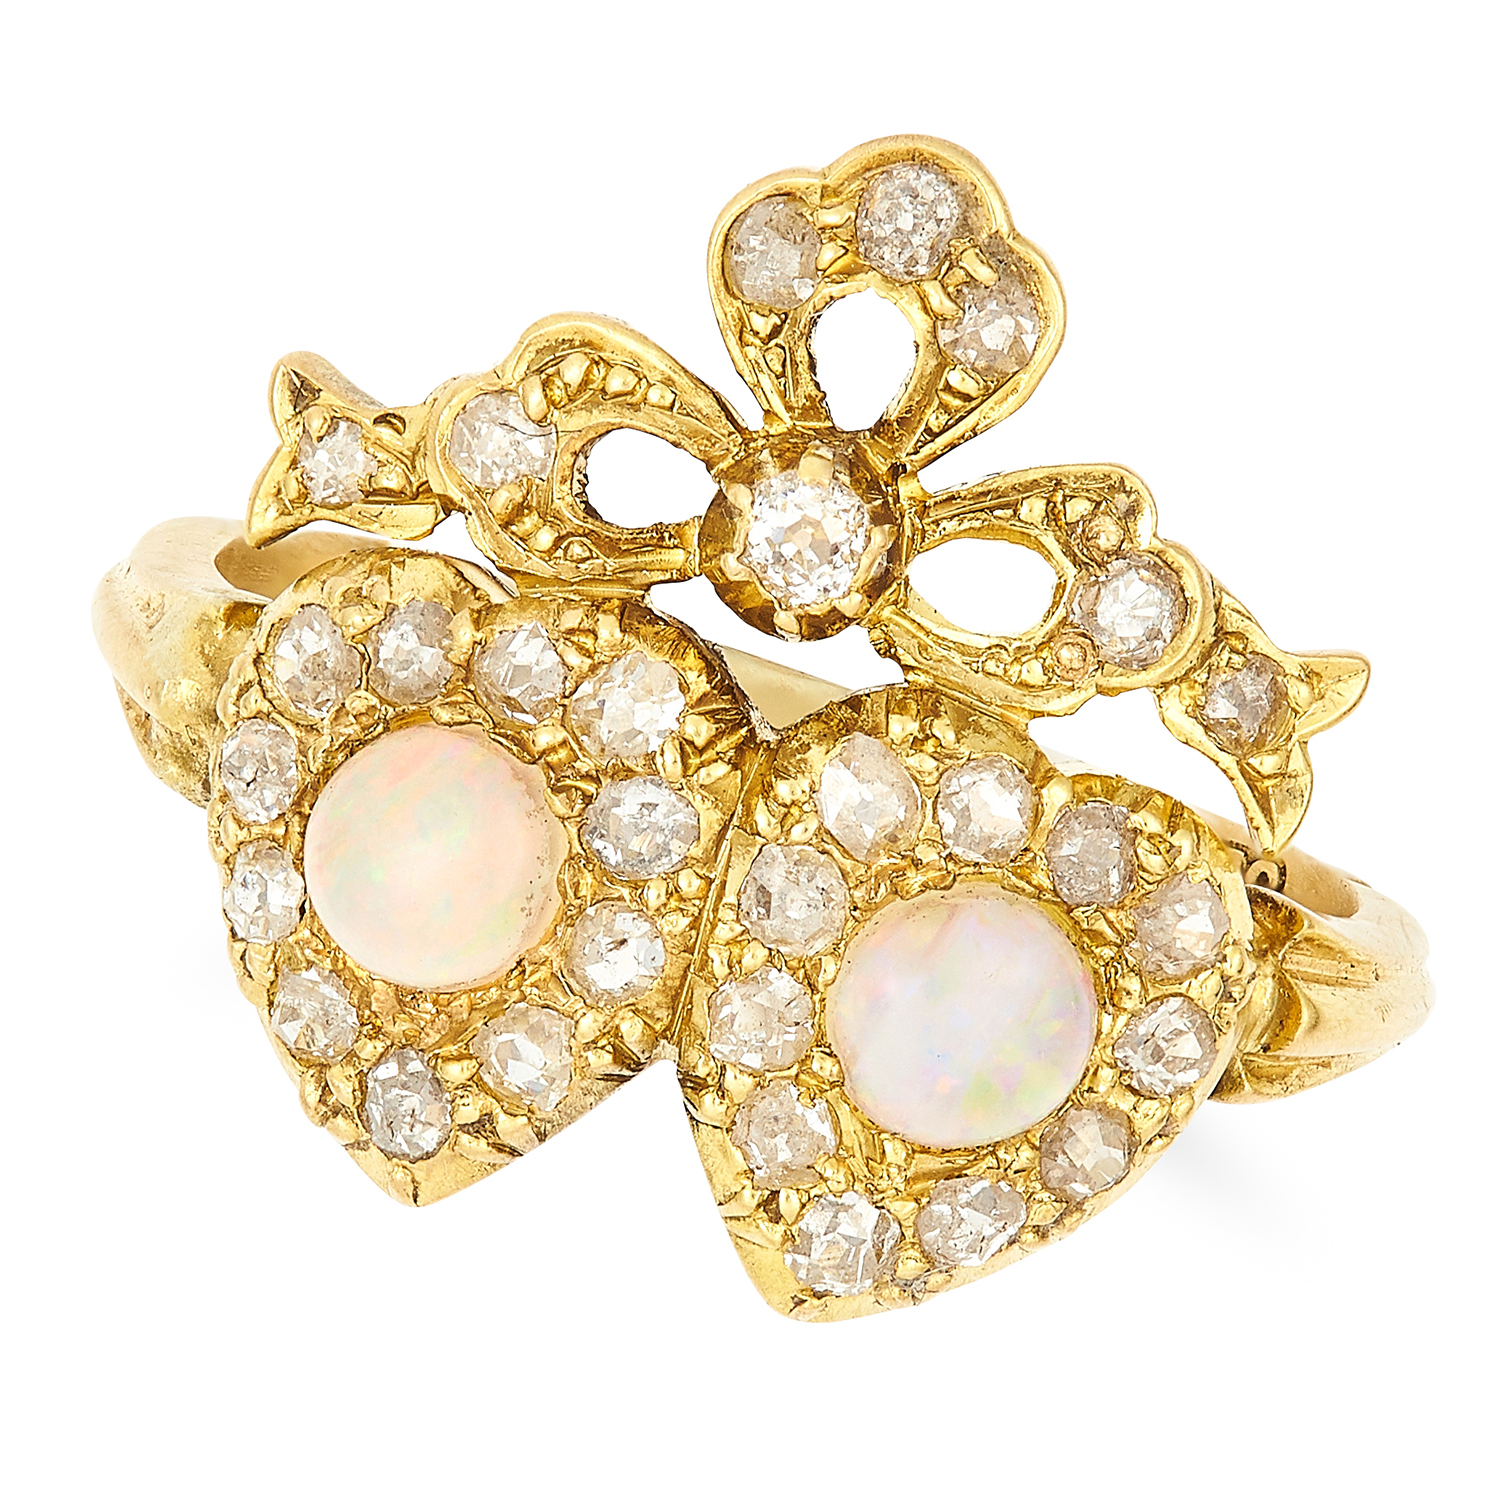 OPAL AND DIAMOND SWEETHEART RING in 18ct yellow gold, set with cabochon opals and old cut